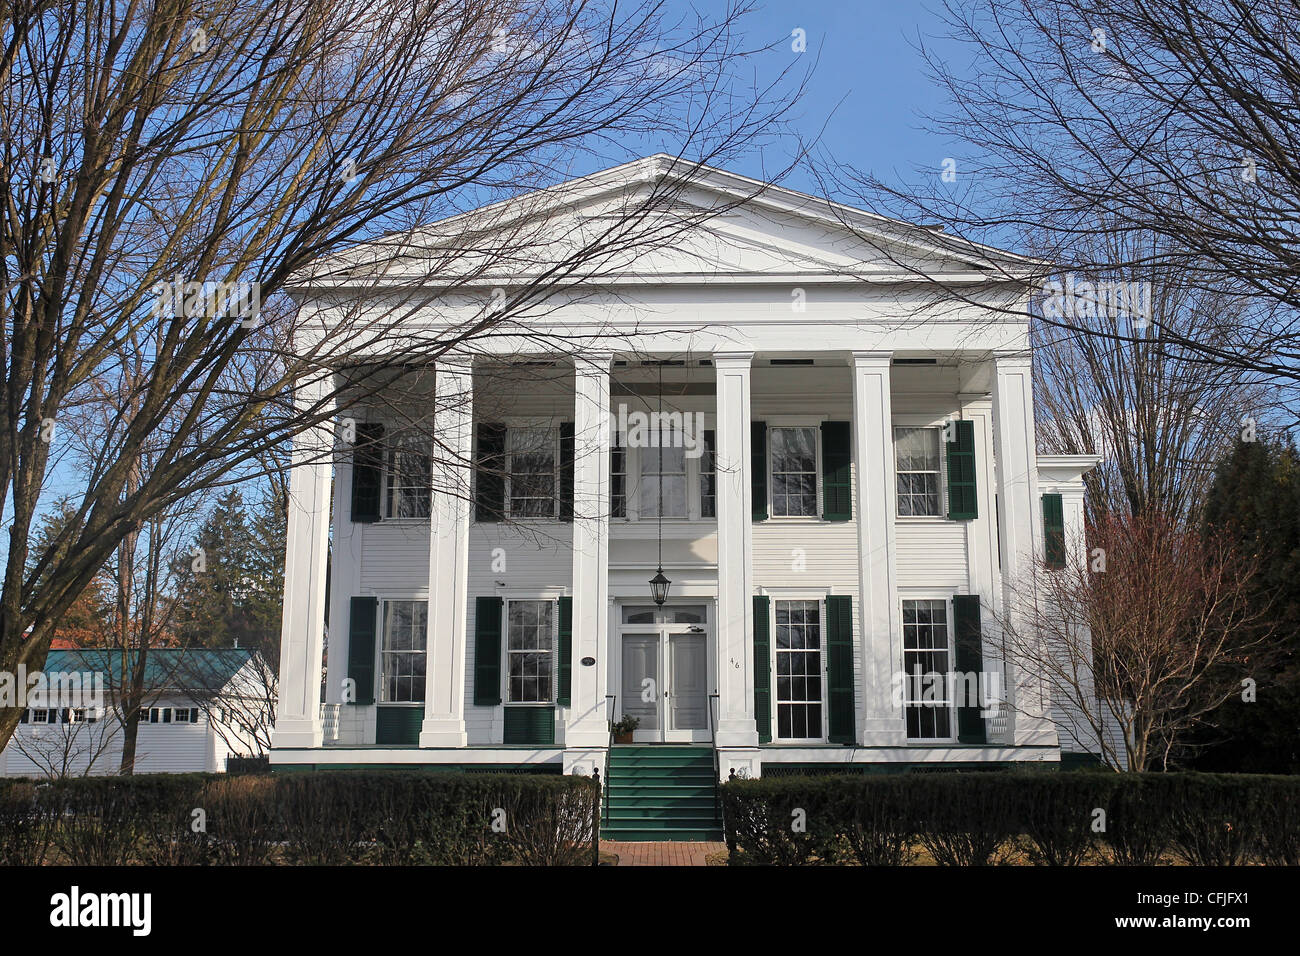 This Greek Revival Style Home Built In 1832 Is One Of Saratoga Springs Many Victorian Era Homes